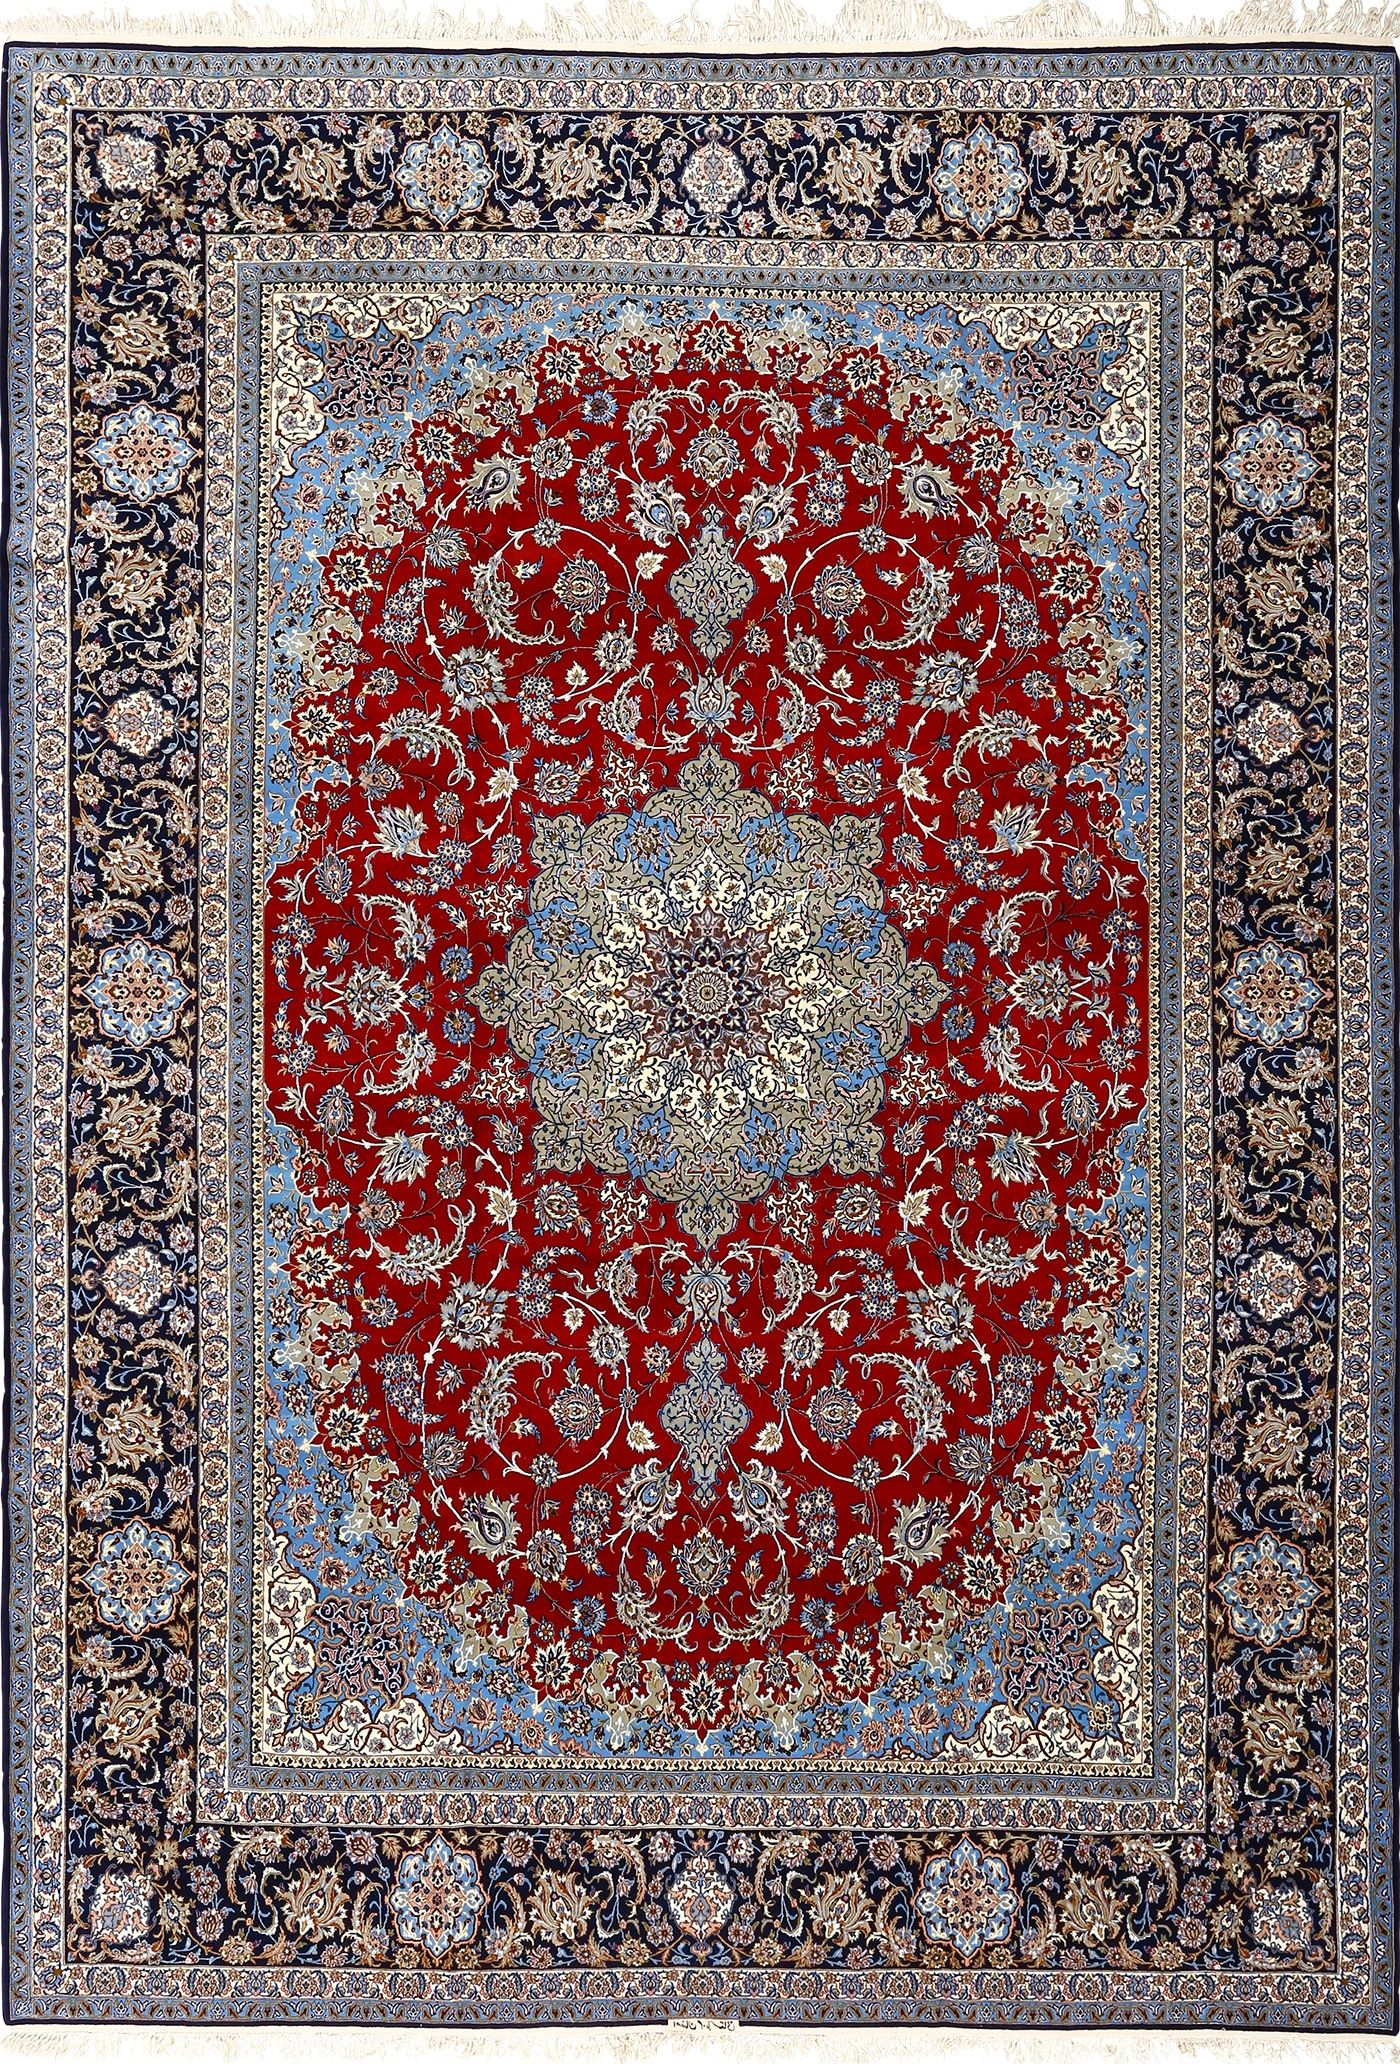 Vintage Red Background Isfahan Persian Rug 51090 Nazmiyal Vintage Persian Rug Persian Rug Modern Persian Rug